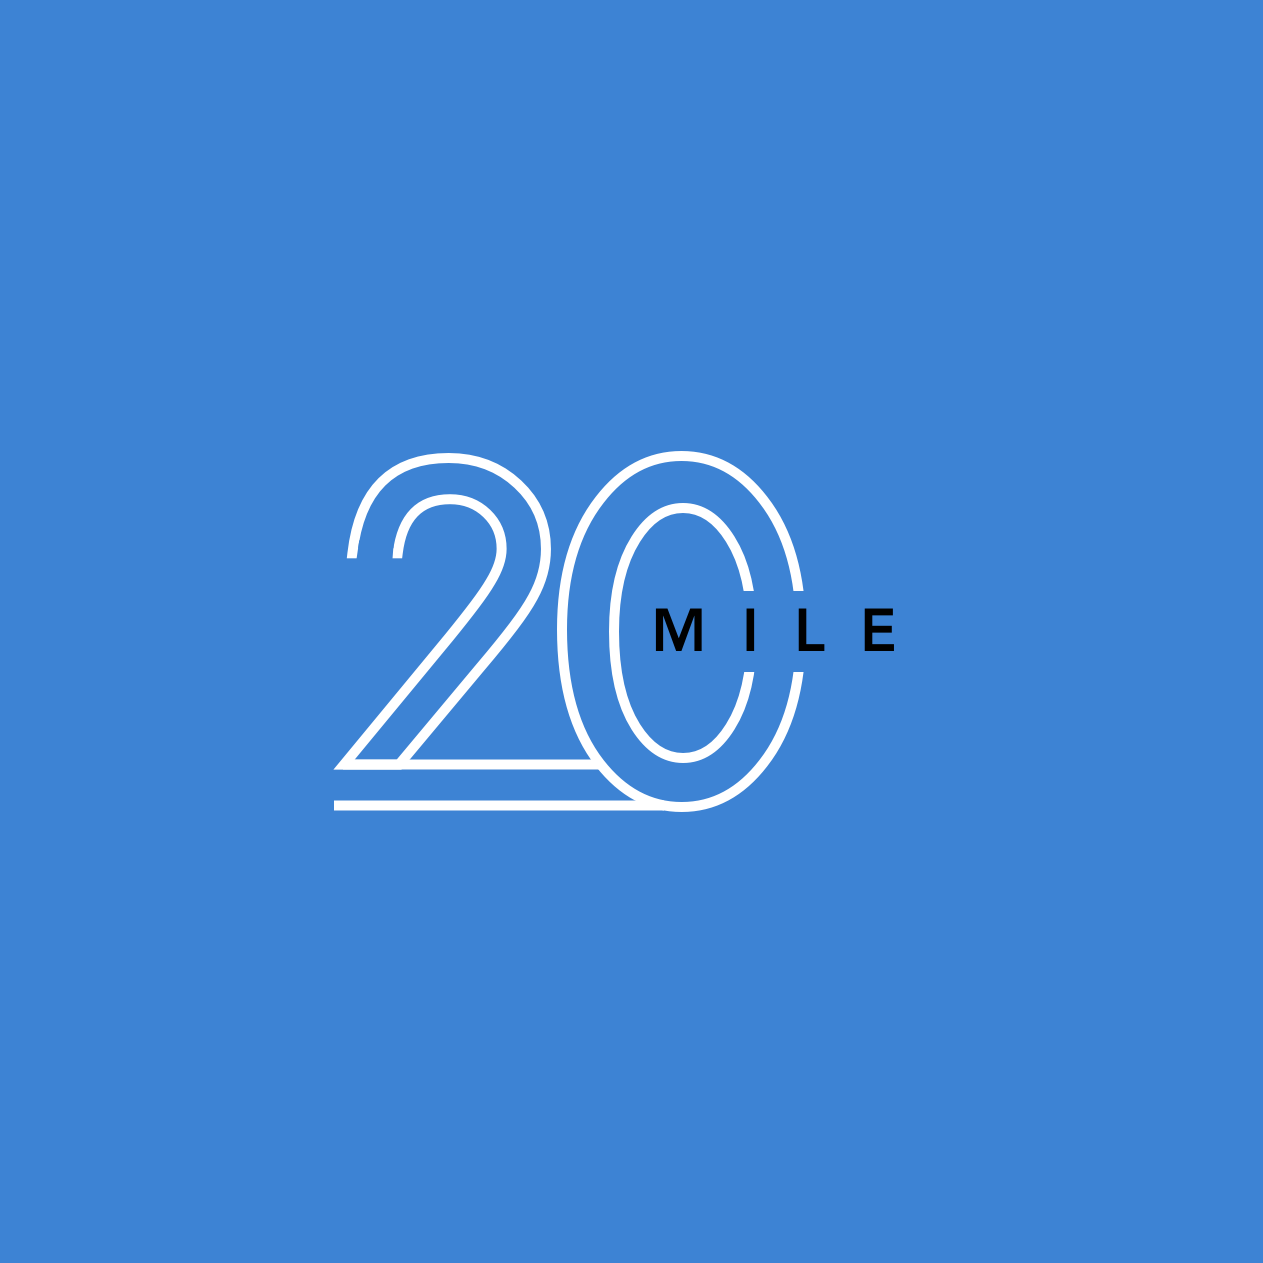 Learn about 20Mile's essence